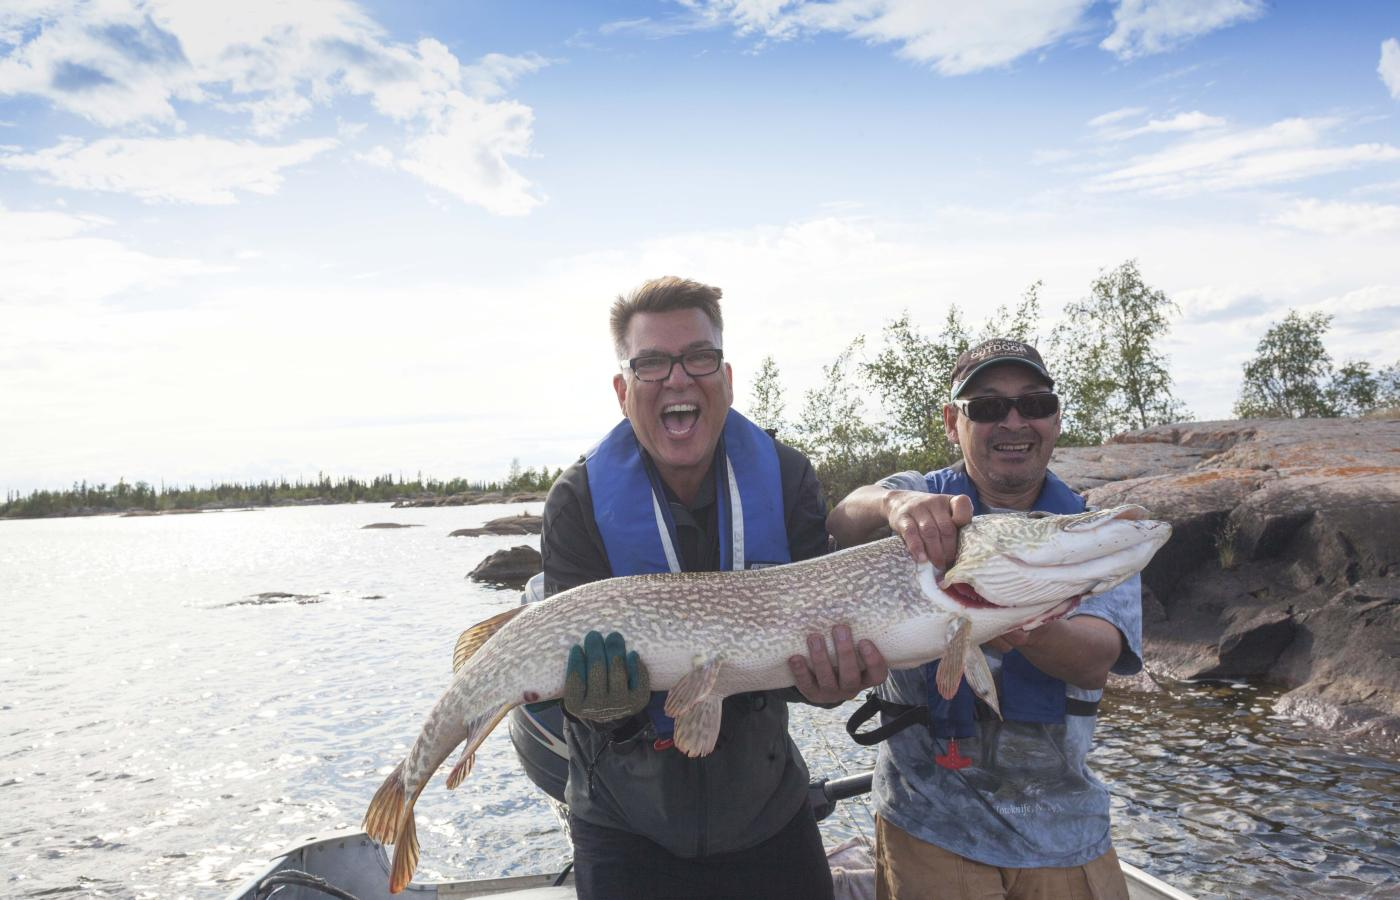 The fish in the South Slave region of Canada's Northwest Territories are really big